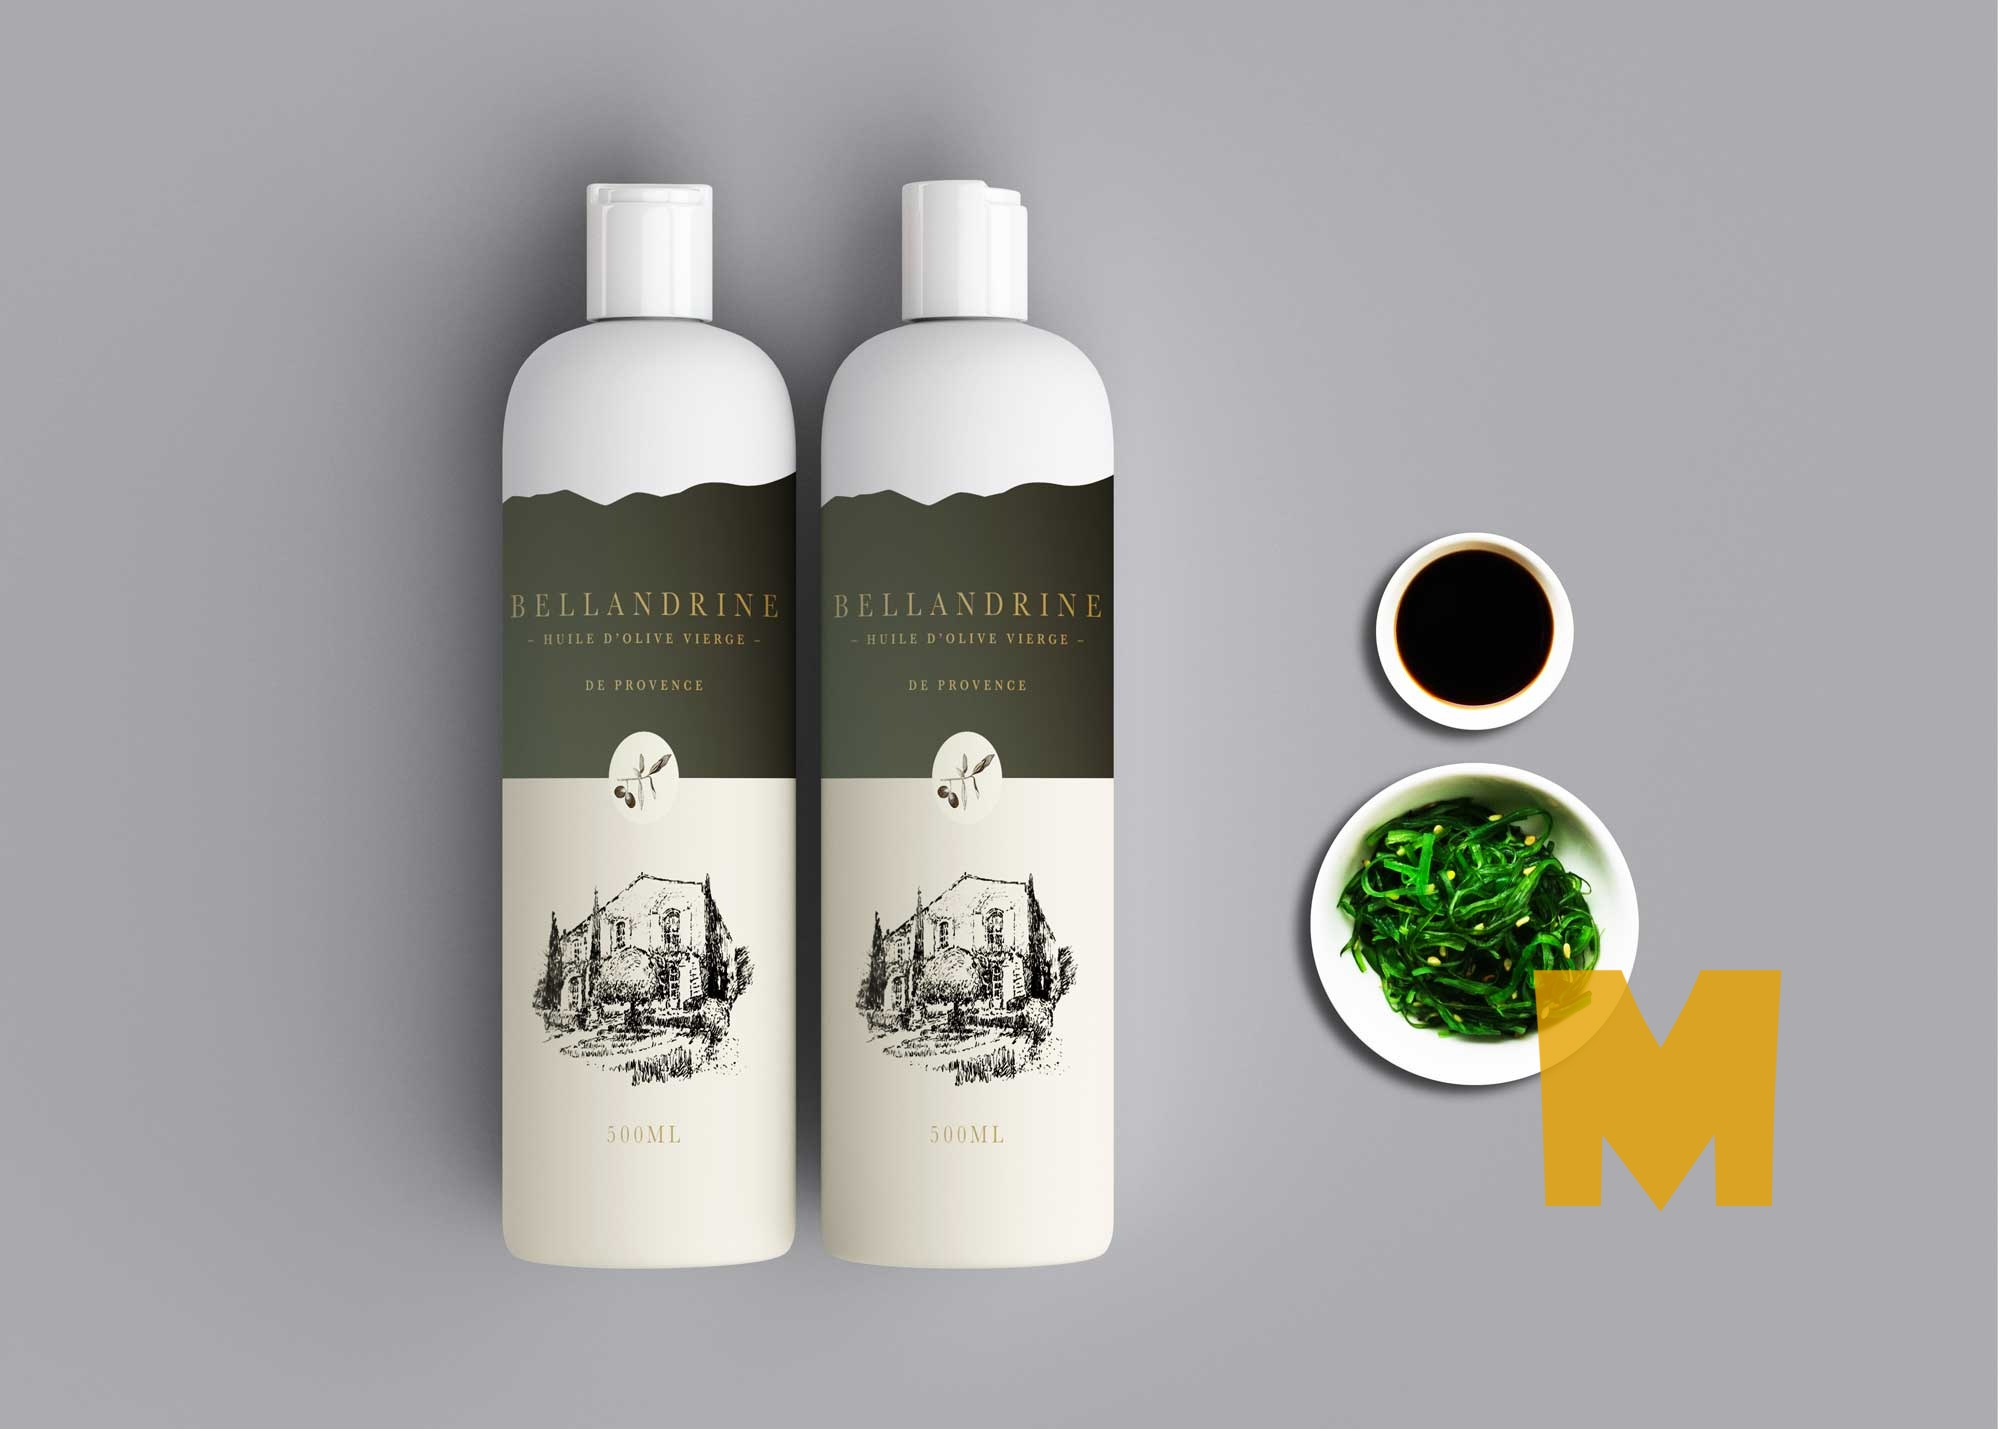 Free Homemade Oil Bottle Mockup